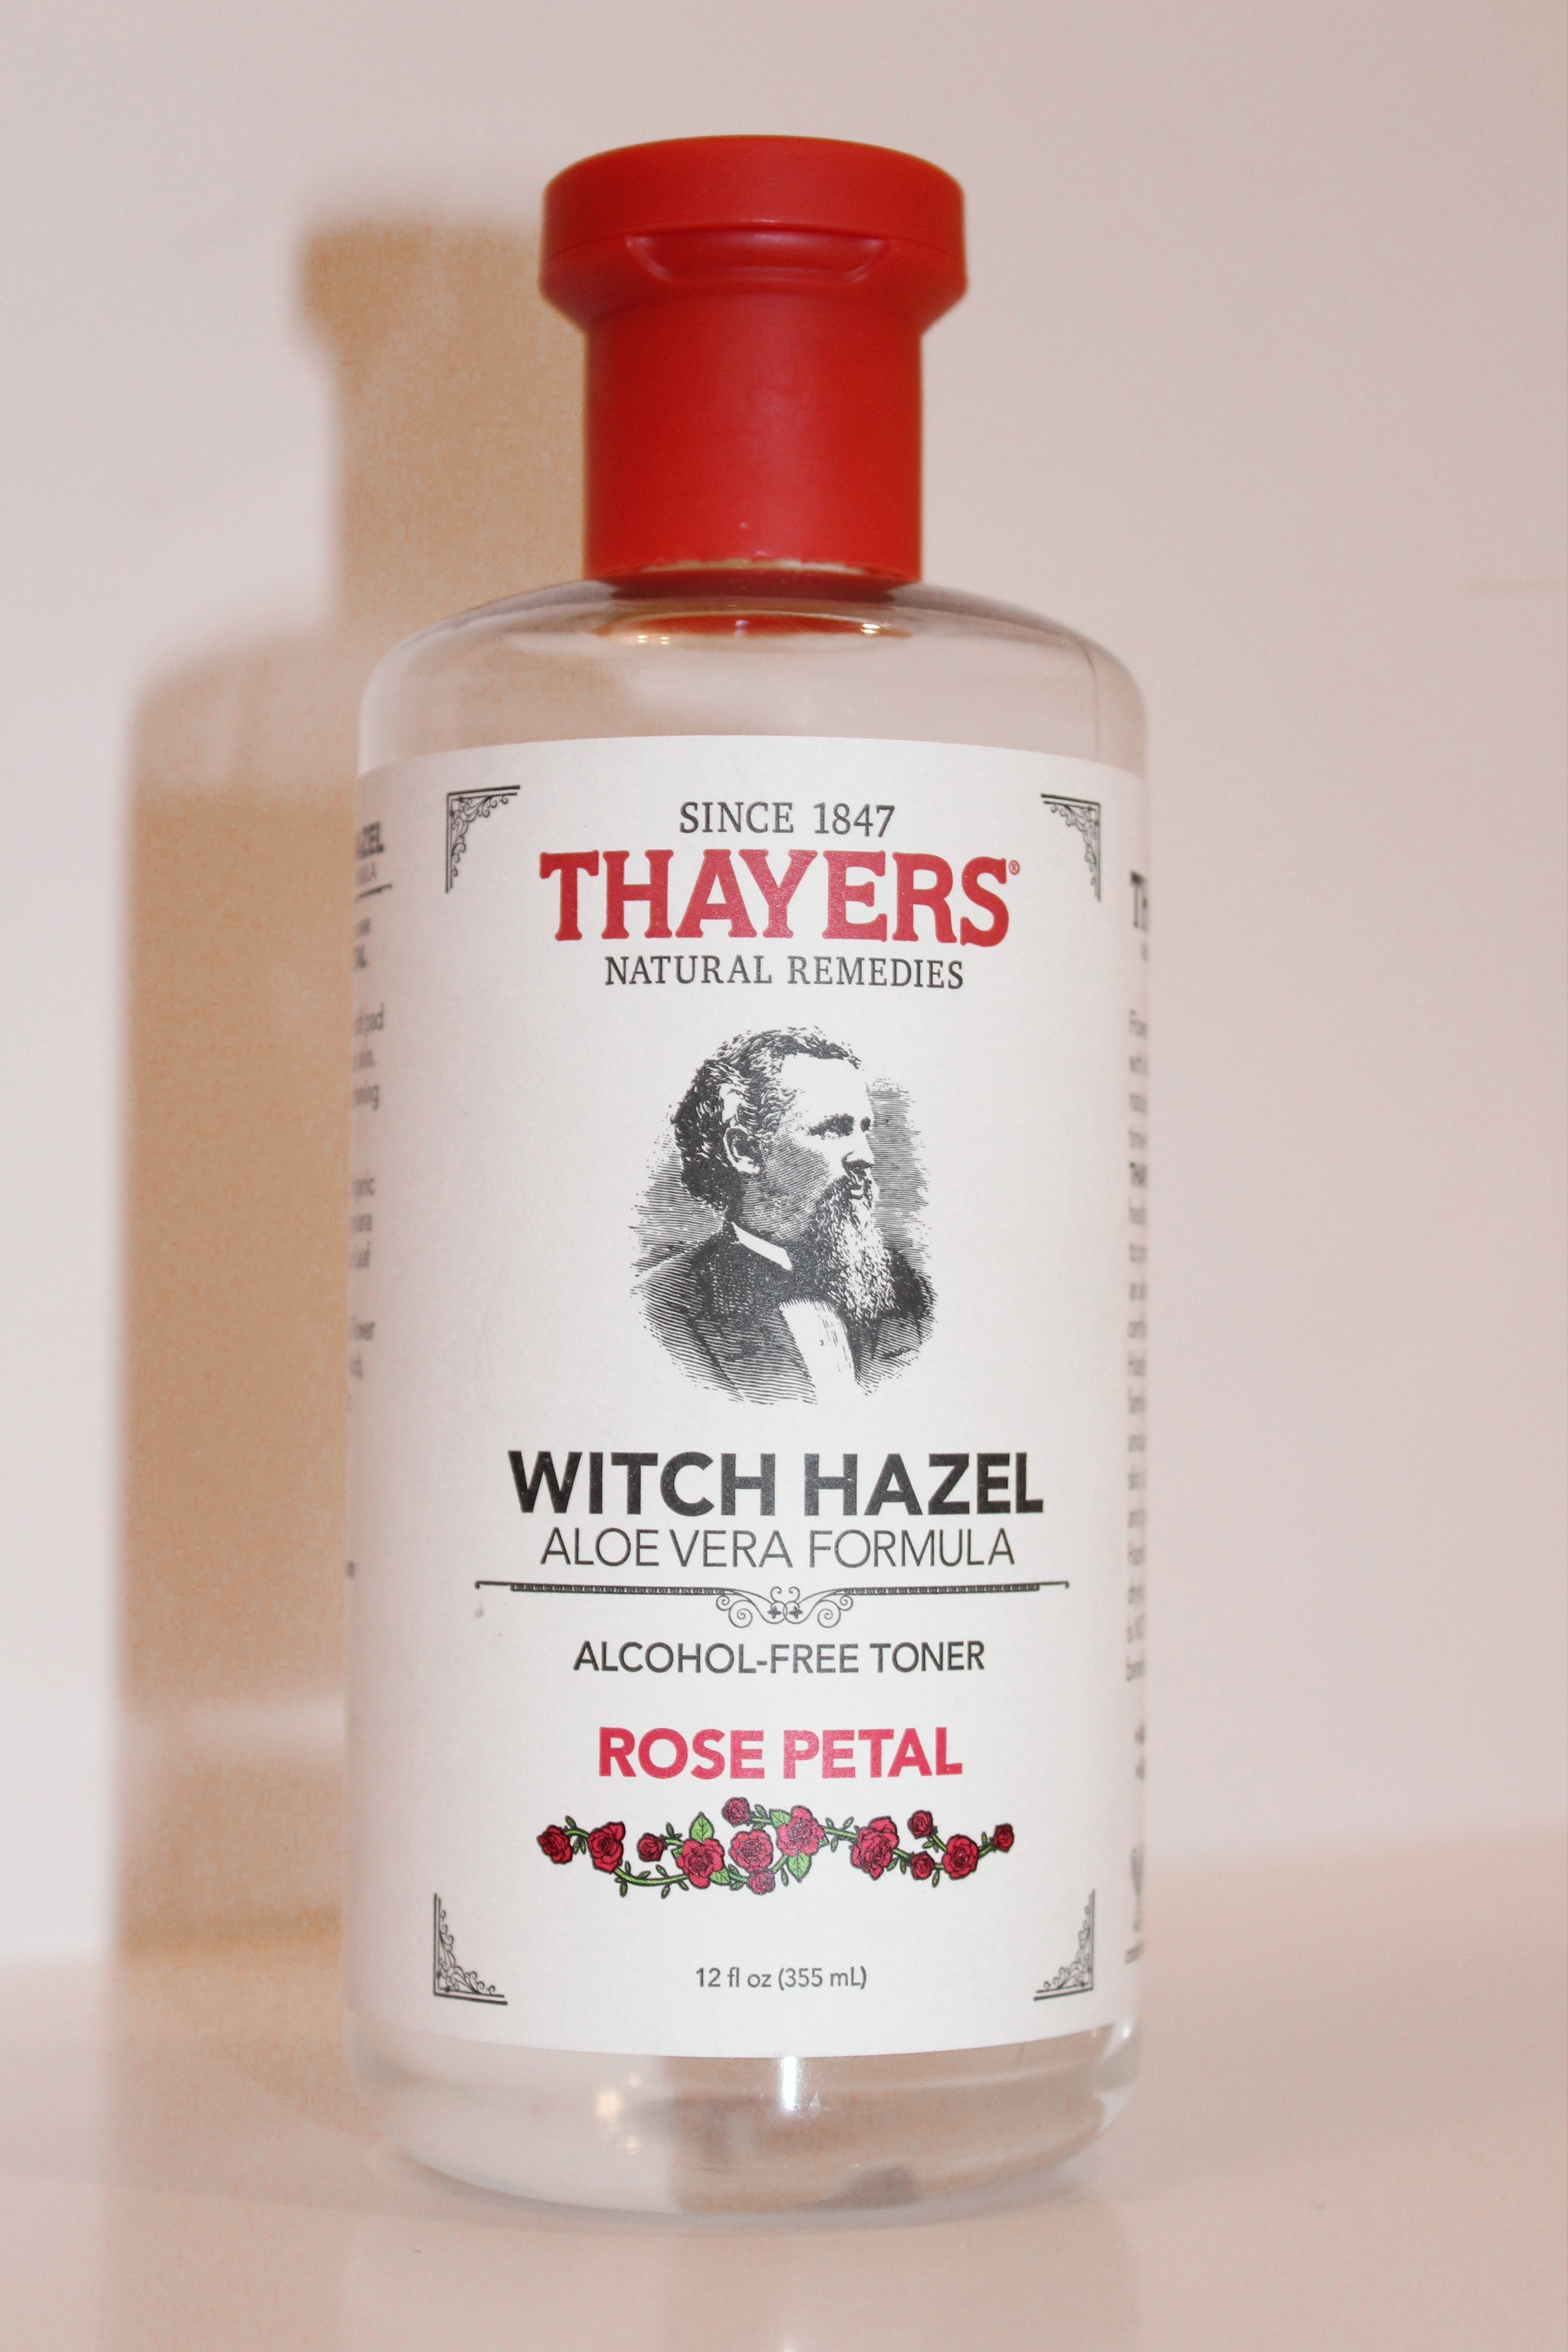 thayers witch hazel toner - Thayers Witch Hazel Toner is the perfect morning toner to make your face feel fresh and ready for the day, whether or not you put on makeup. It is natural, which I love, and super effective. It helps with redness, acne, and overall texture.